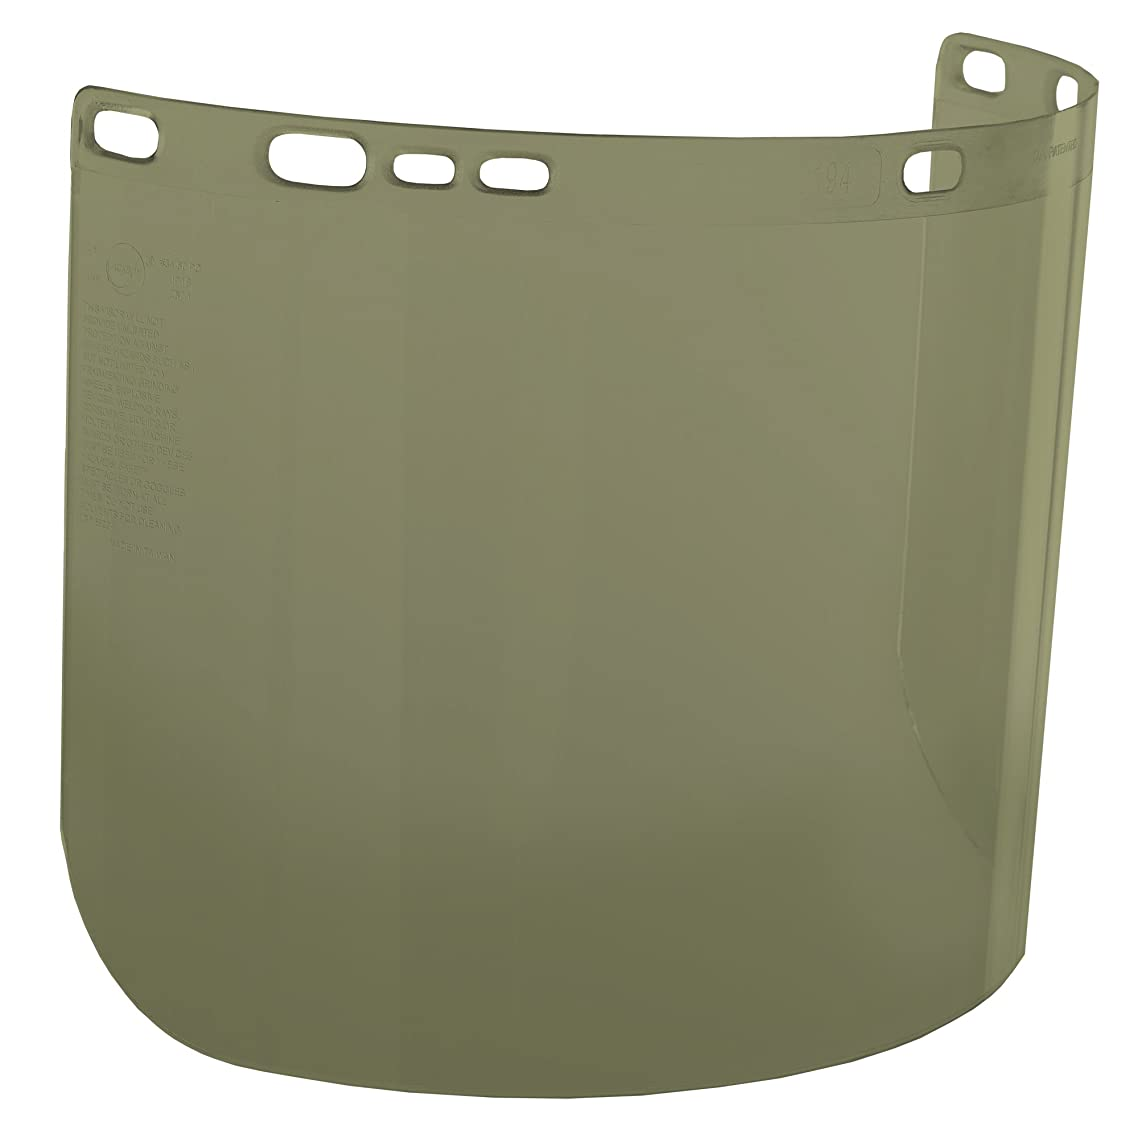 """Jackson Safety F20 High Impact Face Shield (29097), Polycarbonate, 8"""" x 15.5"""" x 0.04"""", Medium Green, Face Protection, Unbound, 36 Shields / Case"""